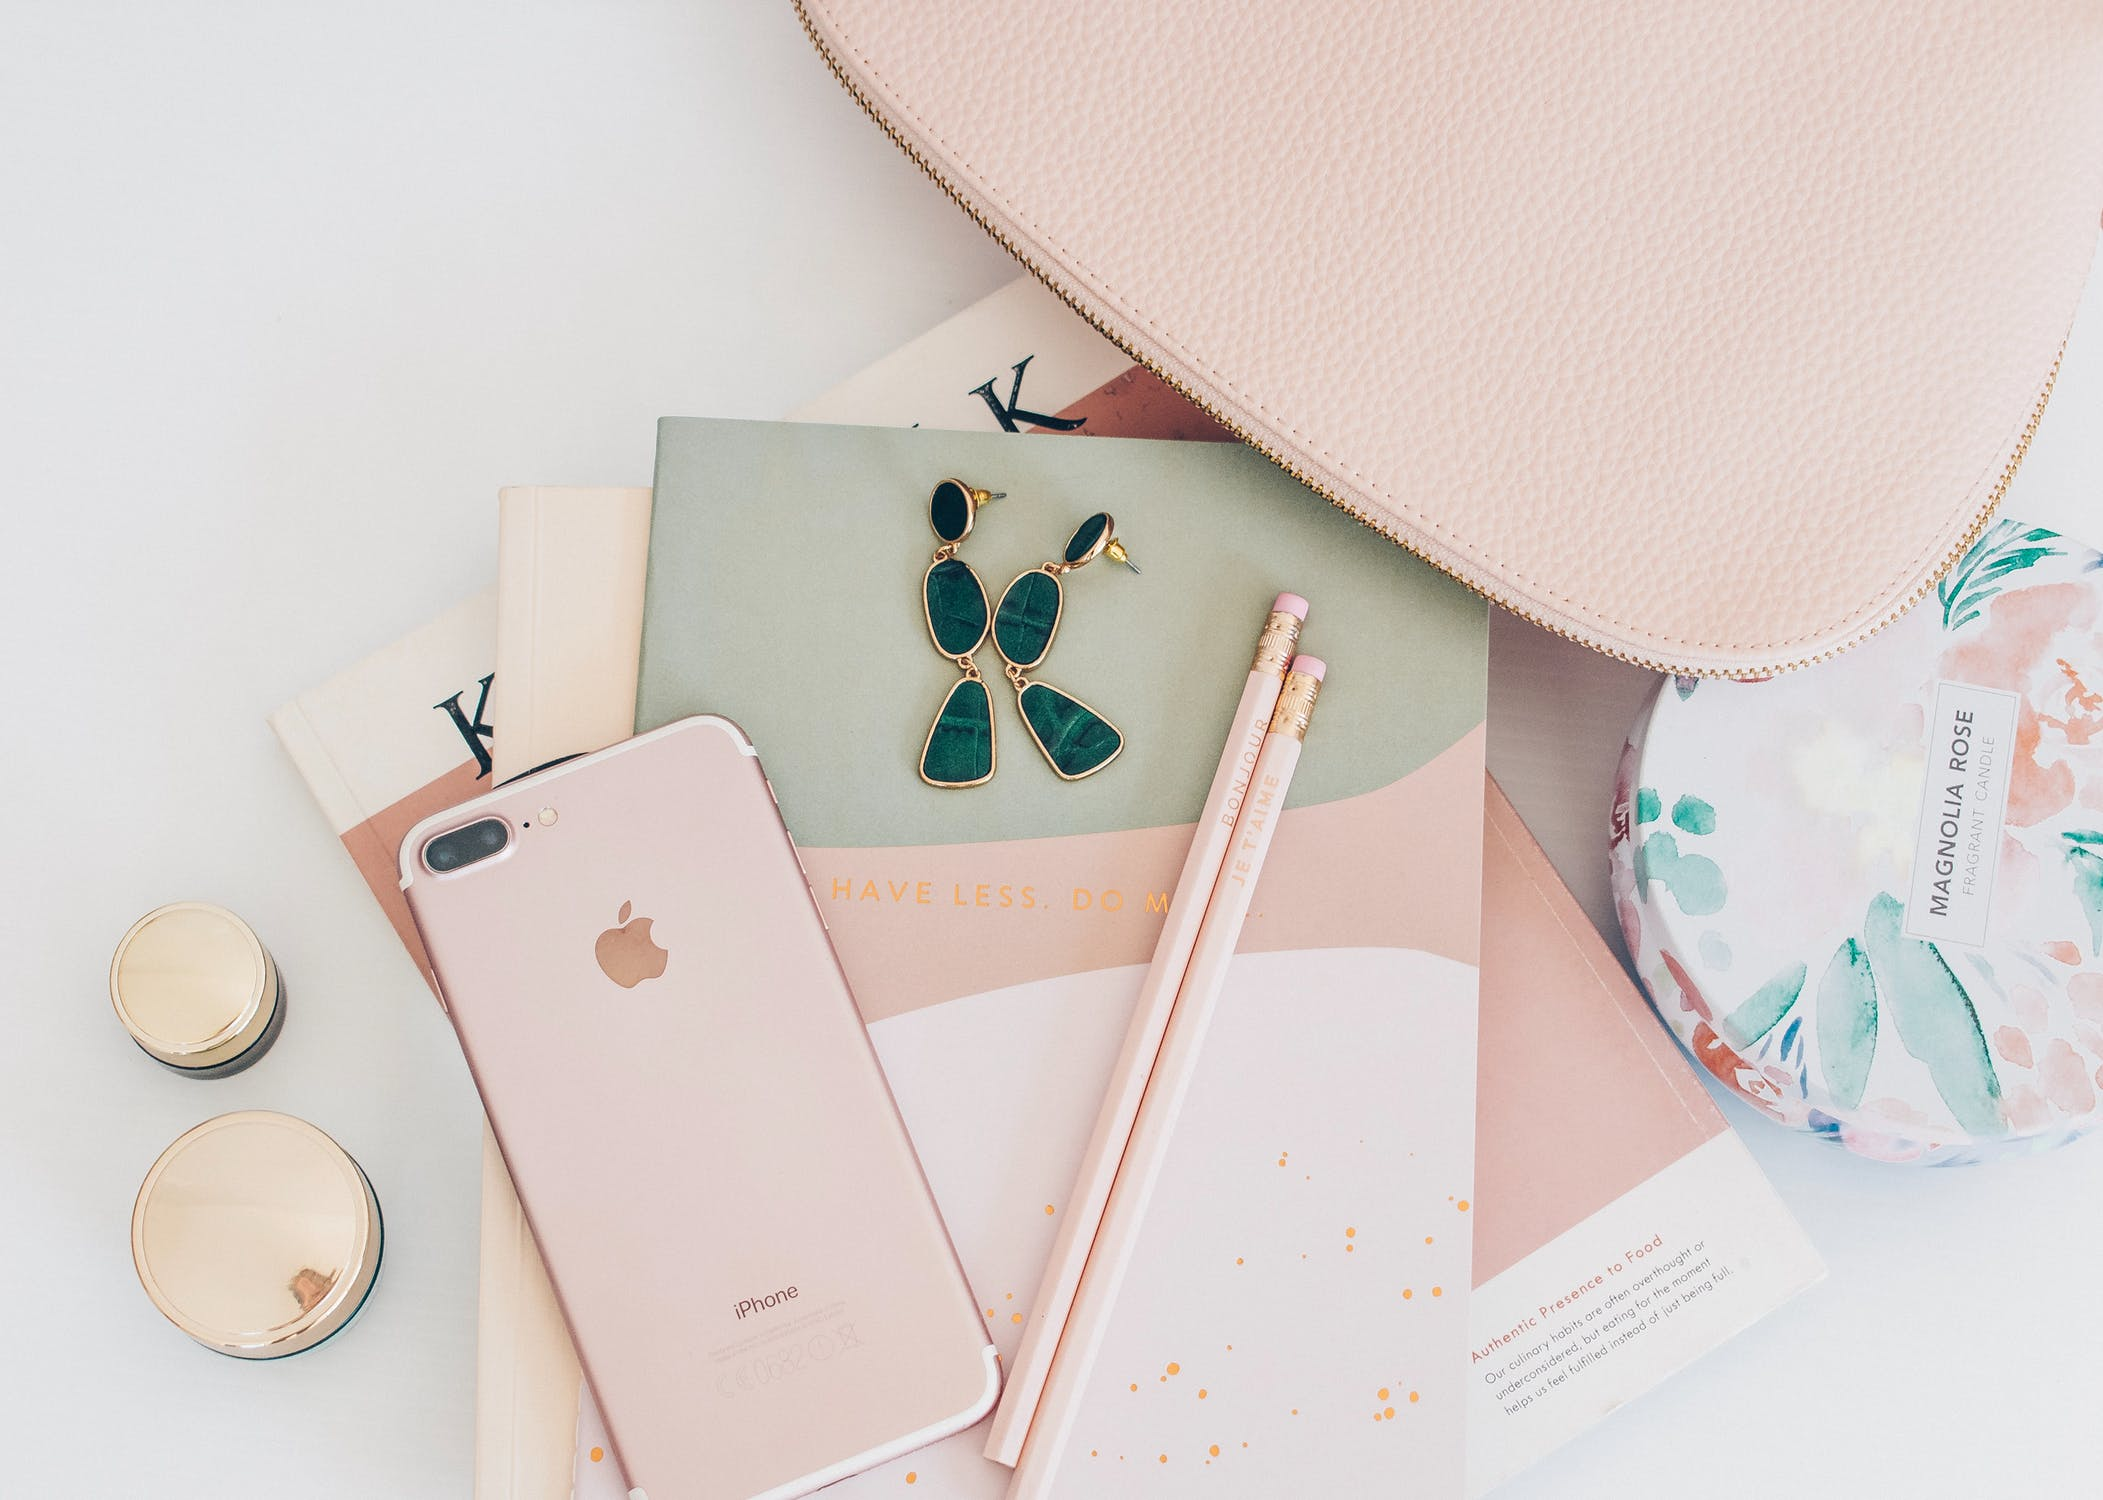 5 Things to Know When Looking for Custom Made Accessories